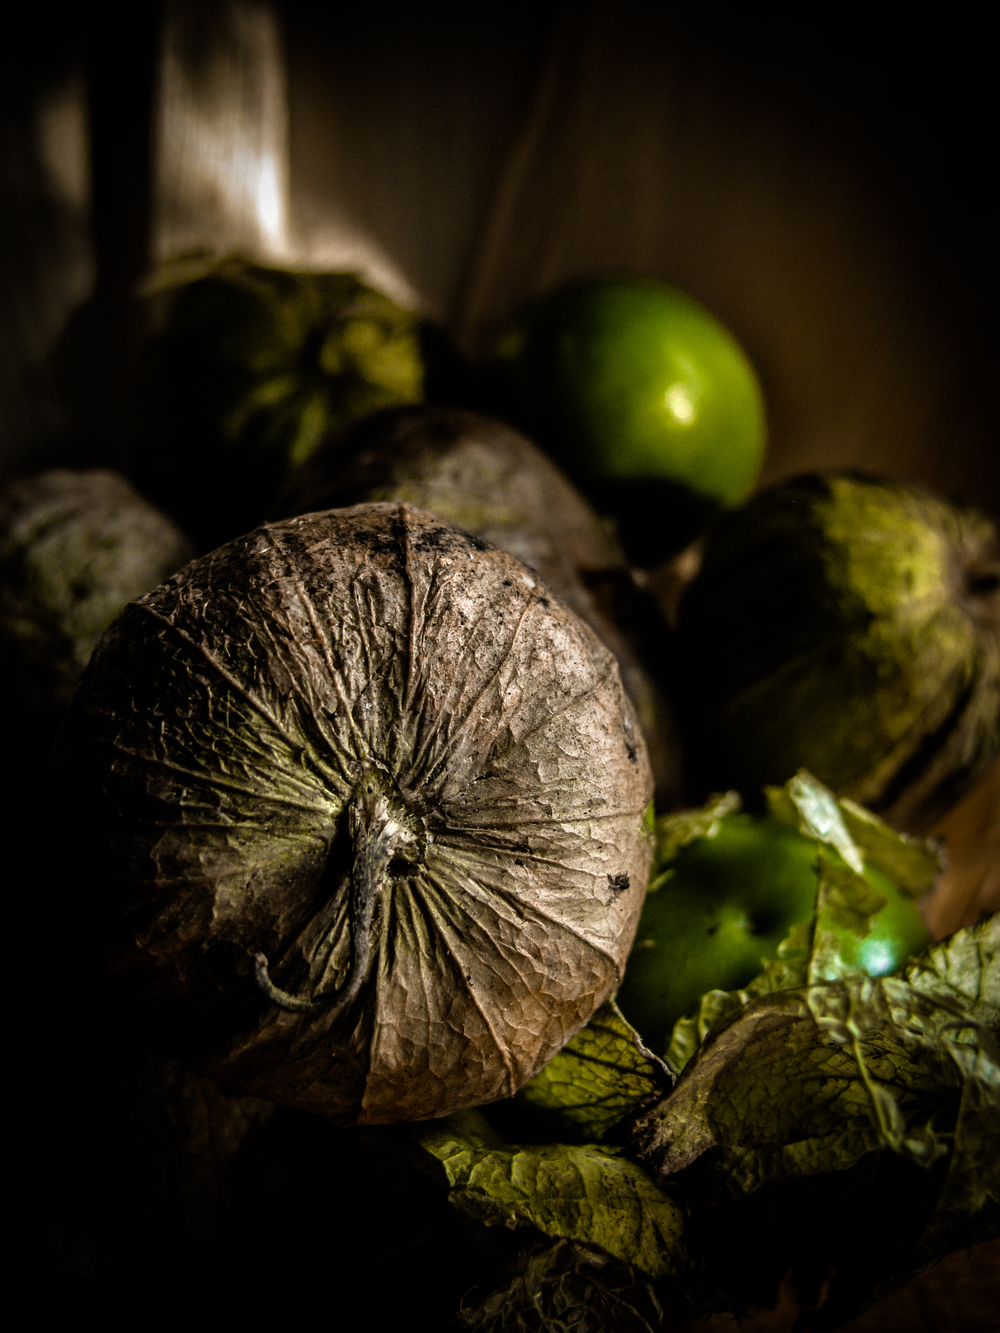 tomatillo_corn_husks.jpg